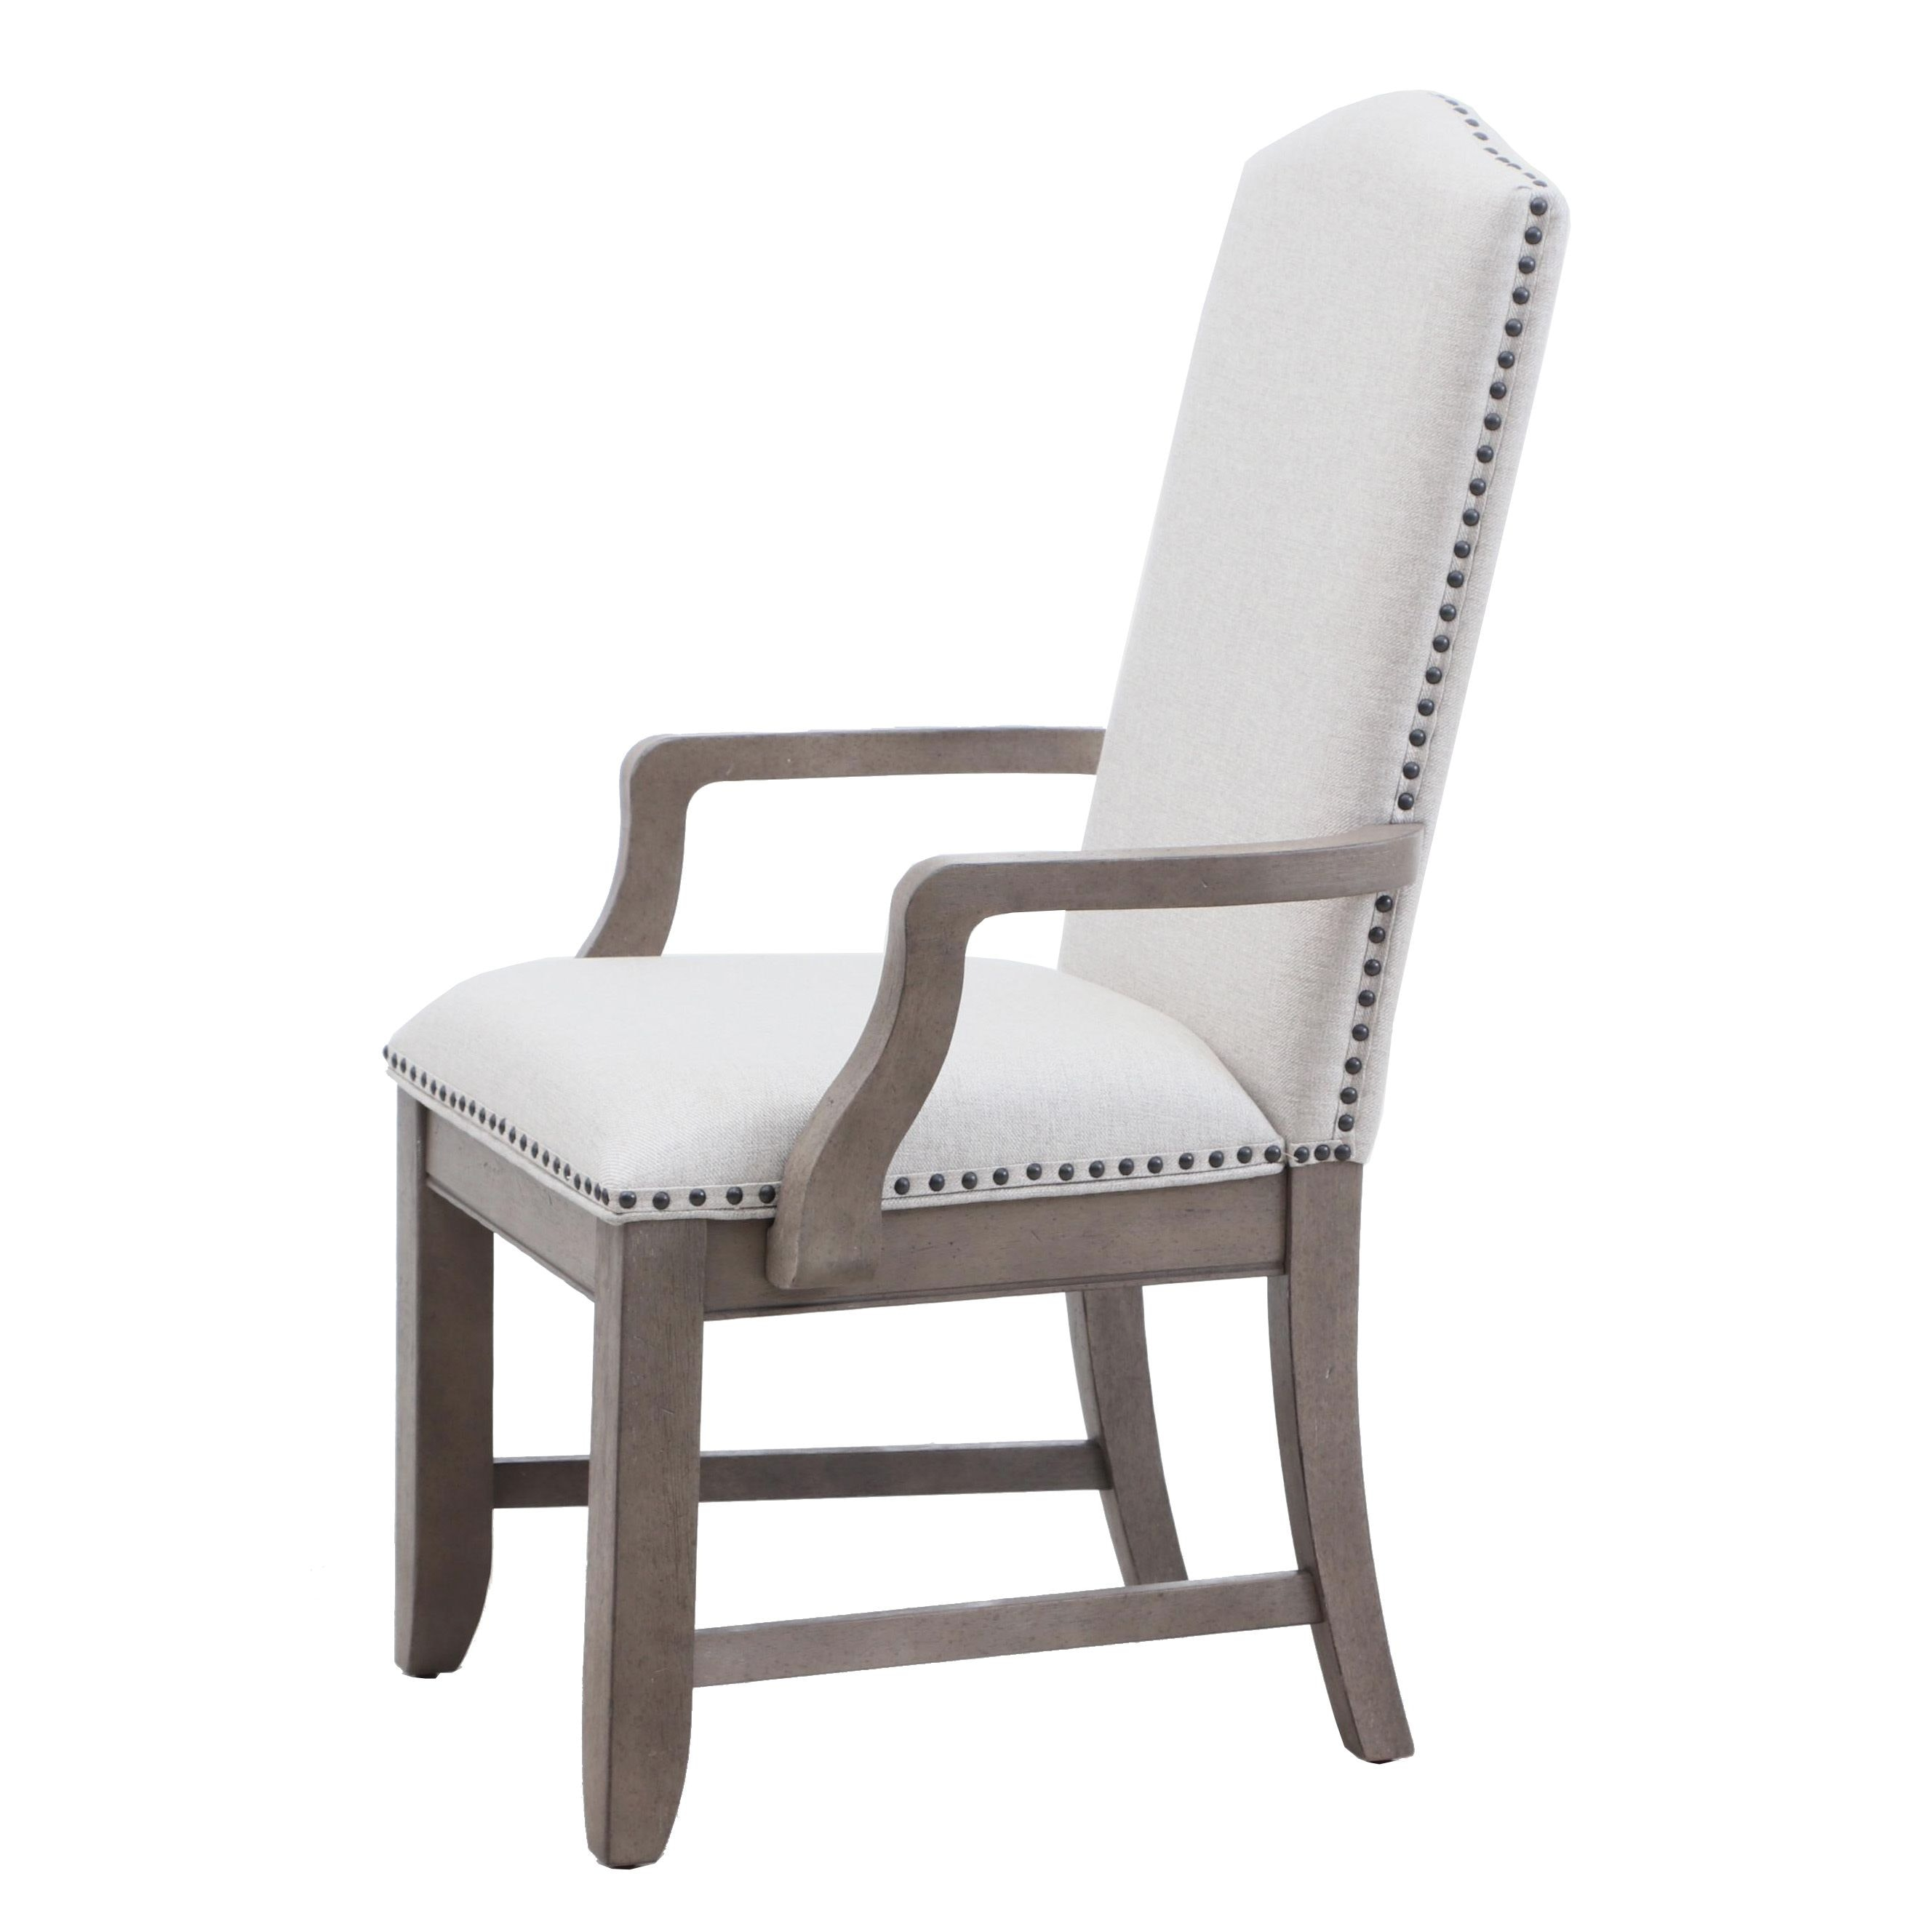 Contemporary Camel Back Arm Chair by Home Meridian